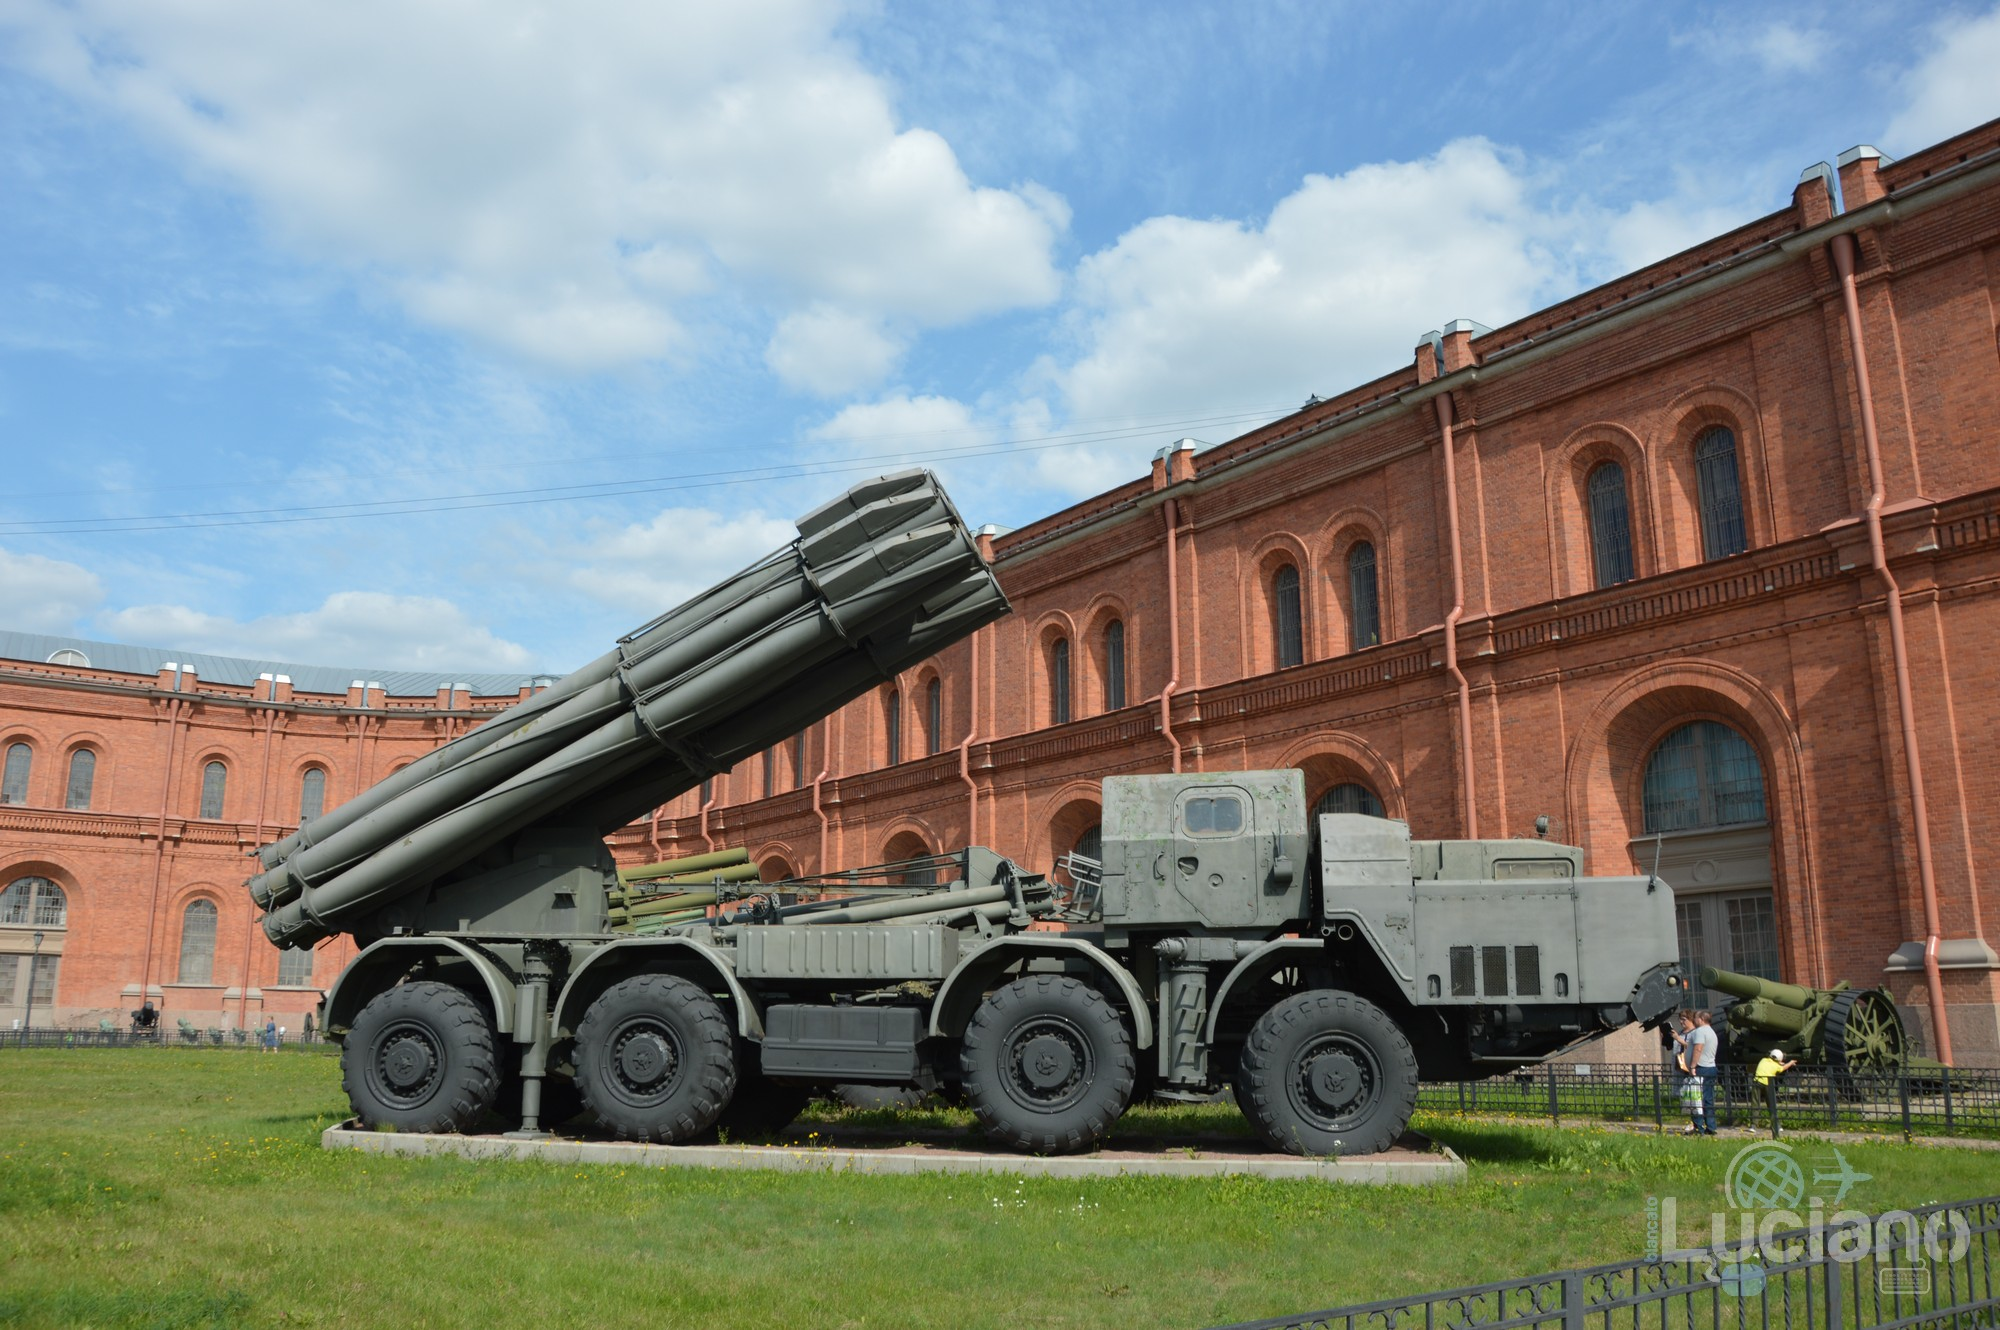 Military-Historical-Museum-of-Artillery-Engineer-and-Signal-Corps-St-Petersburg-Russia-Luciano-Blancato- (22)